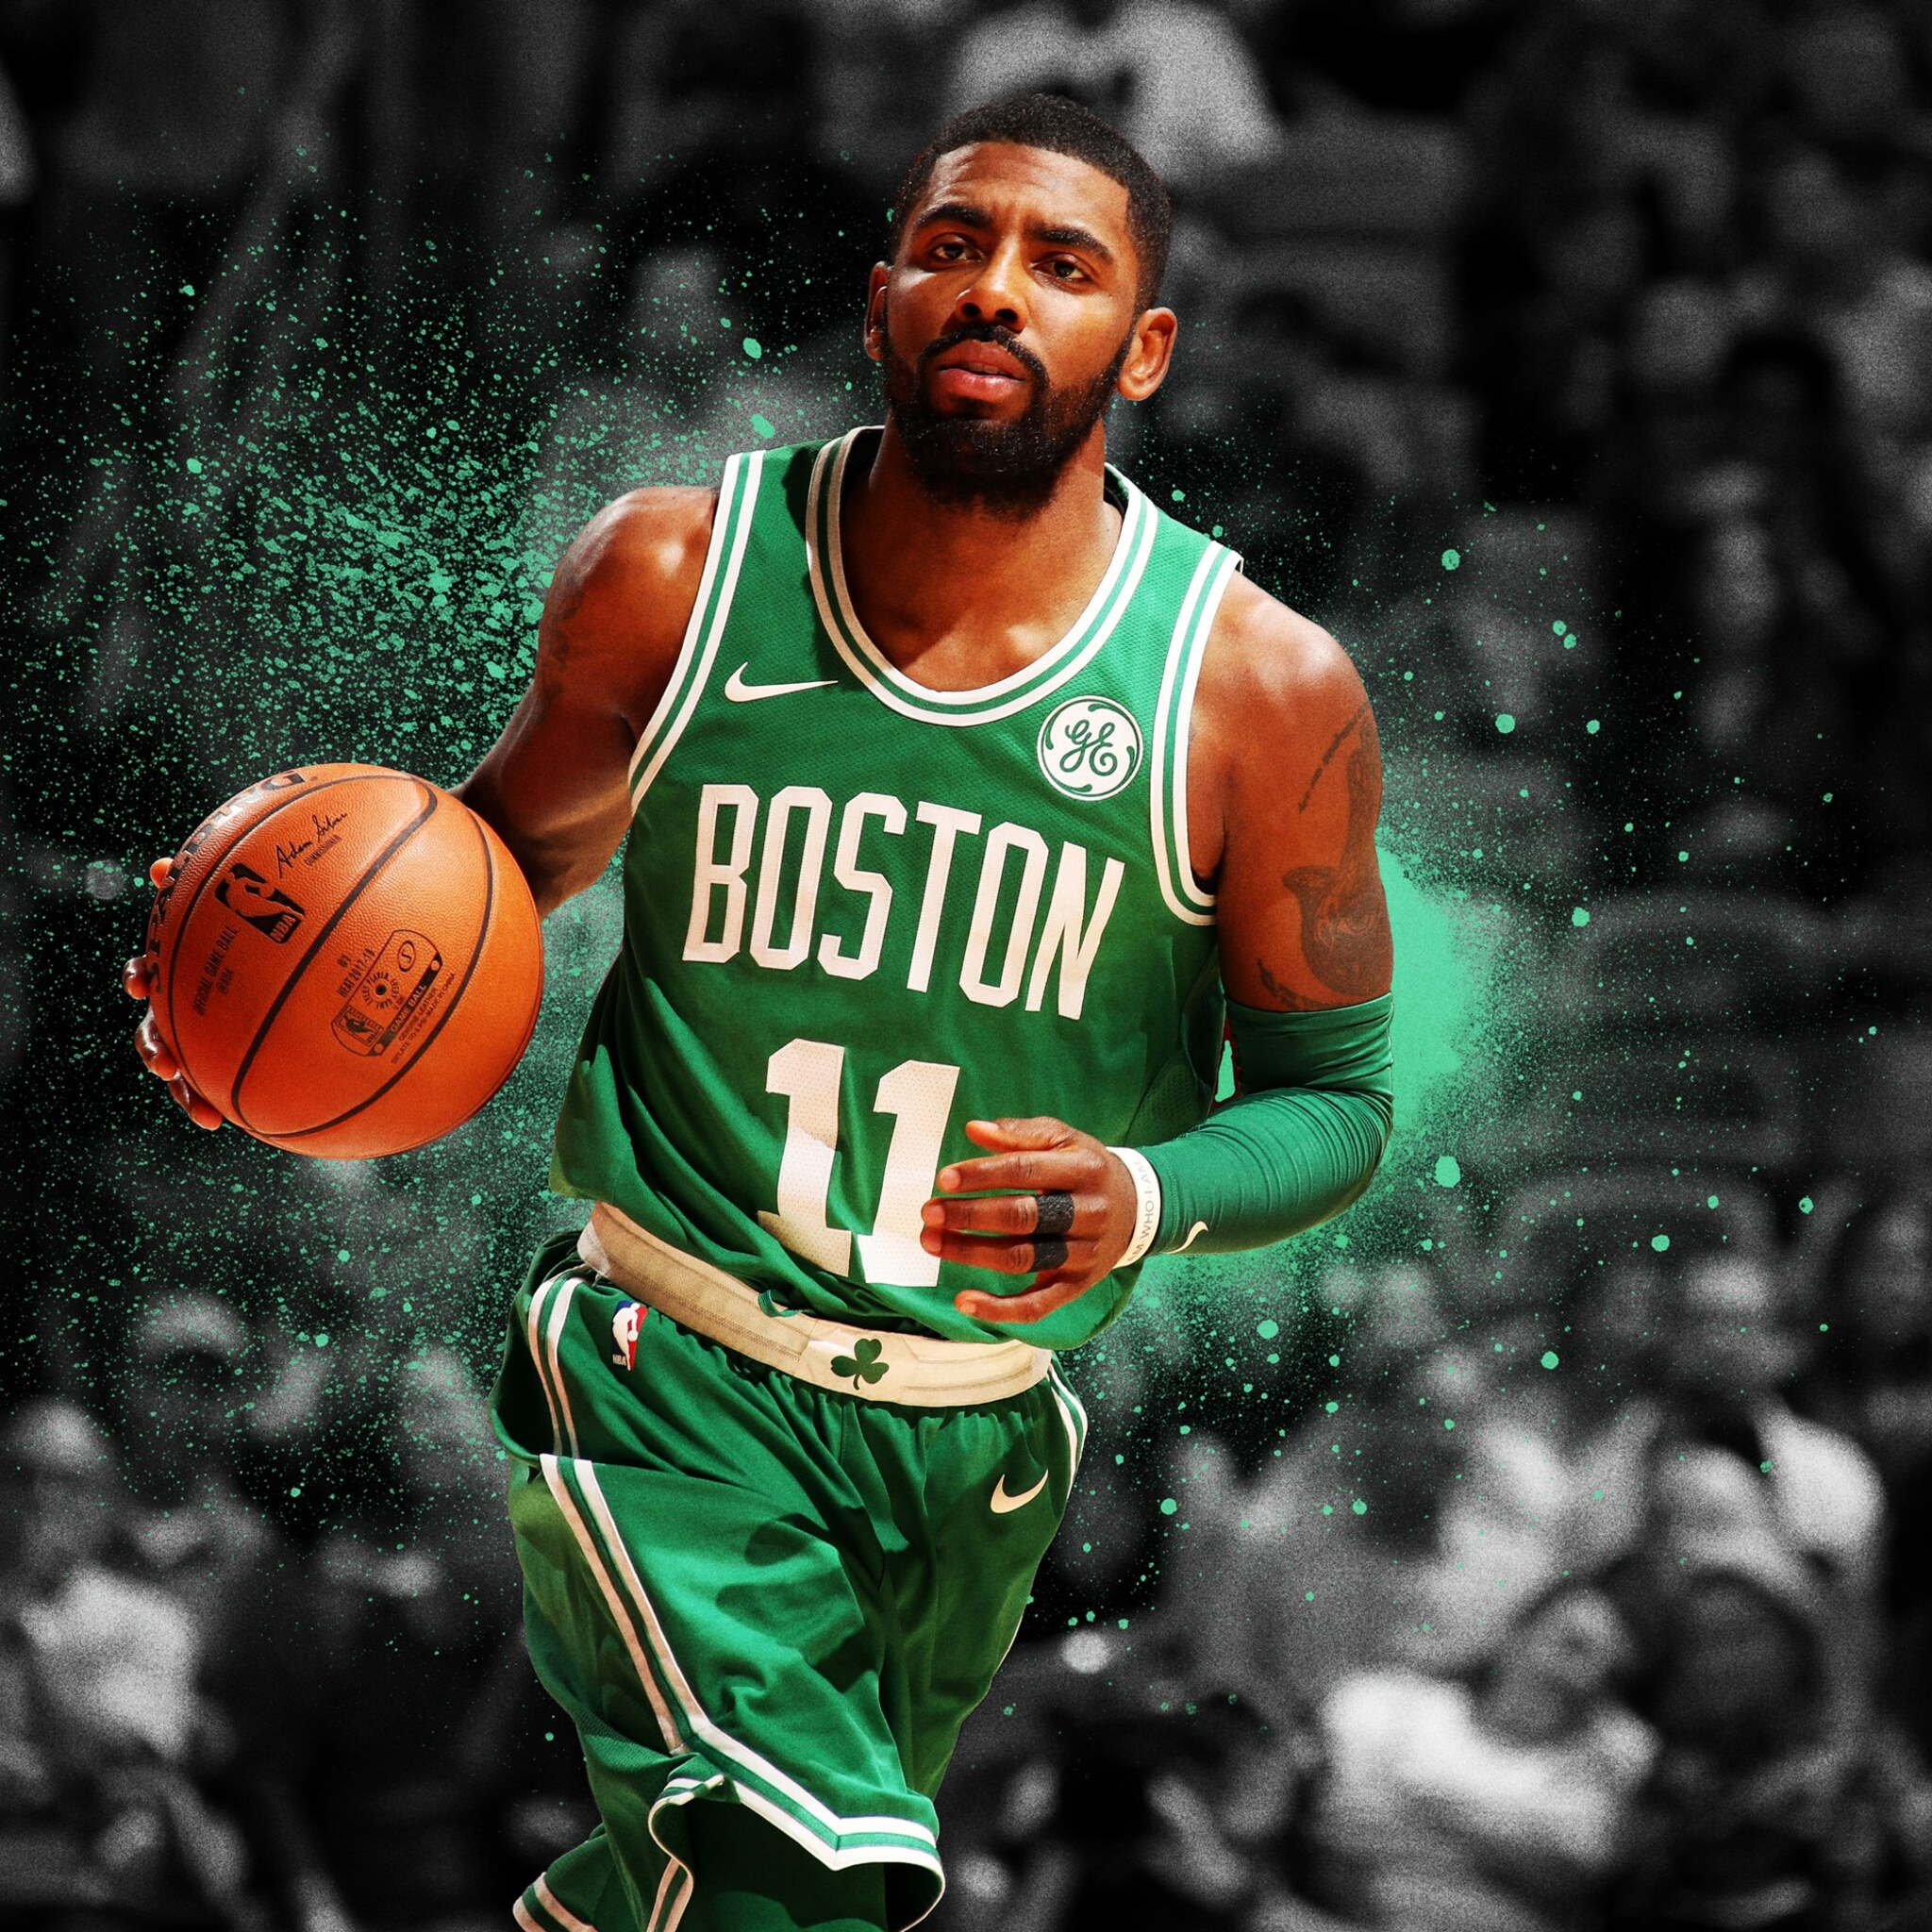 2048x2048 Kyrie Irving Ipad Air HD 4k Wallpapers, Images ... Kyrie Irving Wallpaper Download